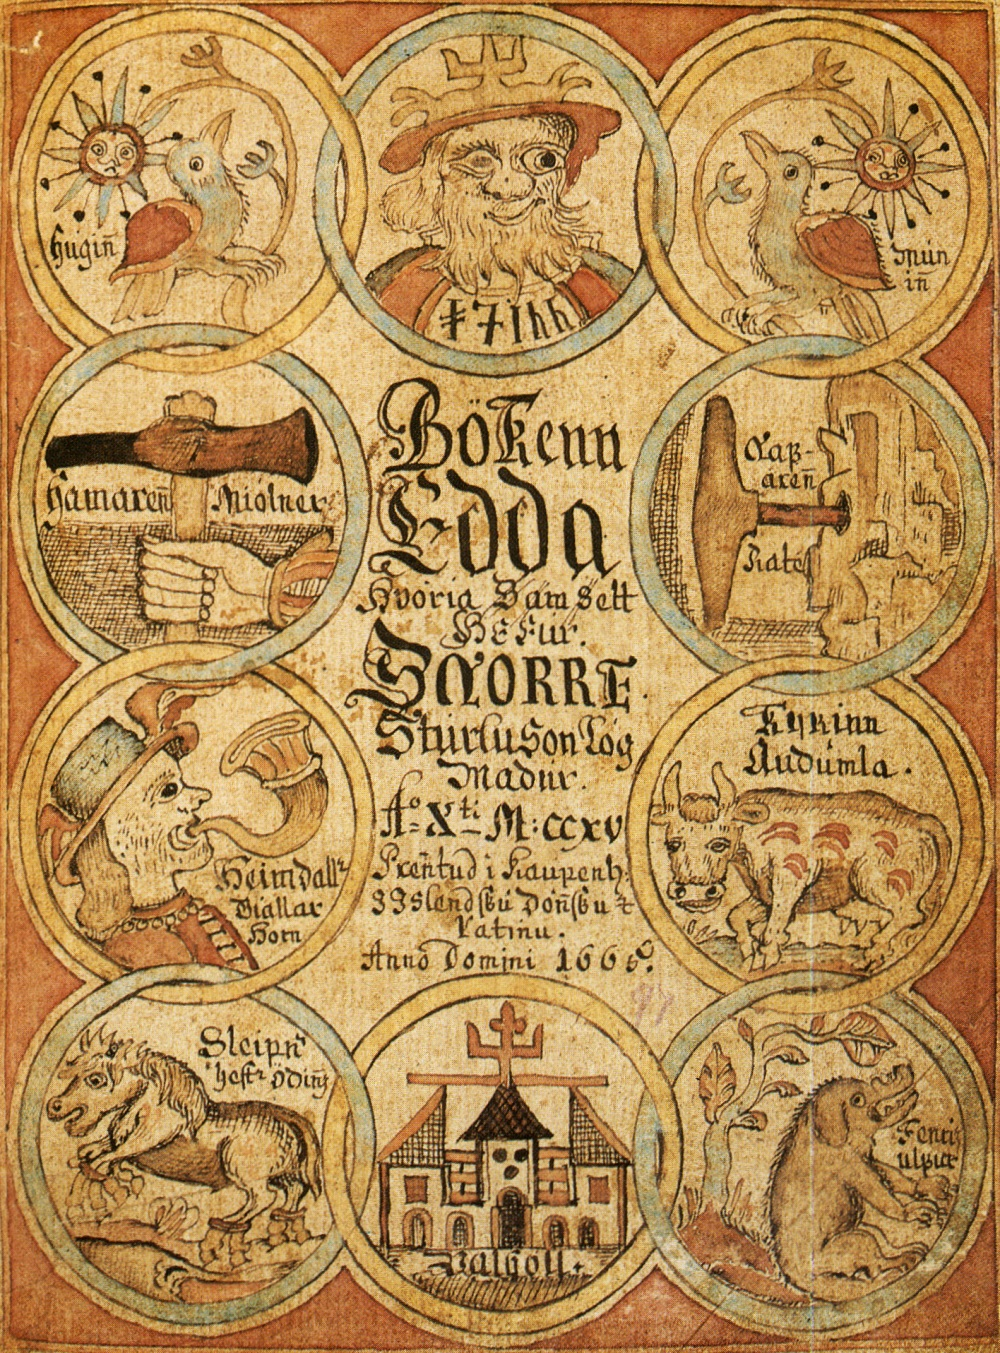 Title page of an 18th century manuscript of the Prose Edda, showing Odin, Heimdallr, Sleipnir and other figures from Norse mythology (Wikimedia Commons)